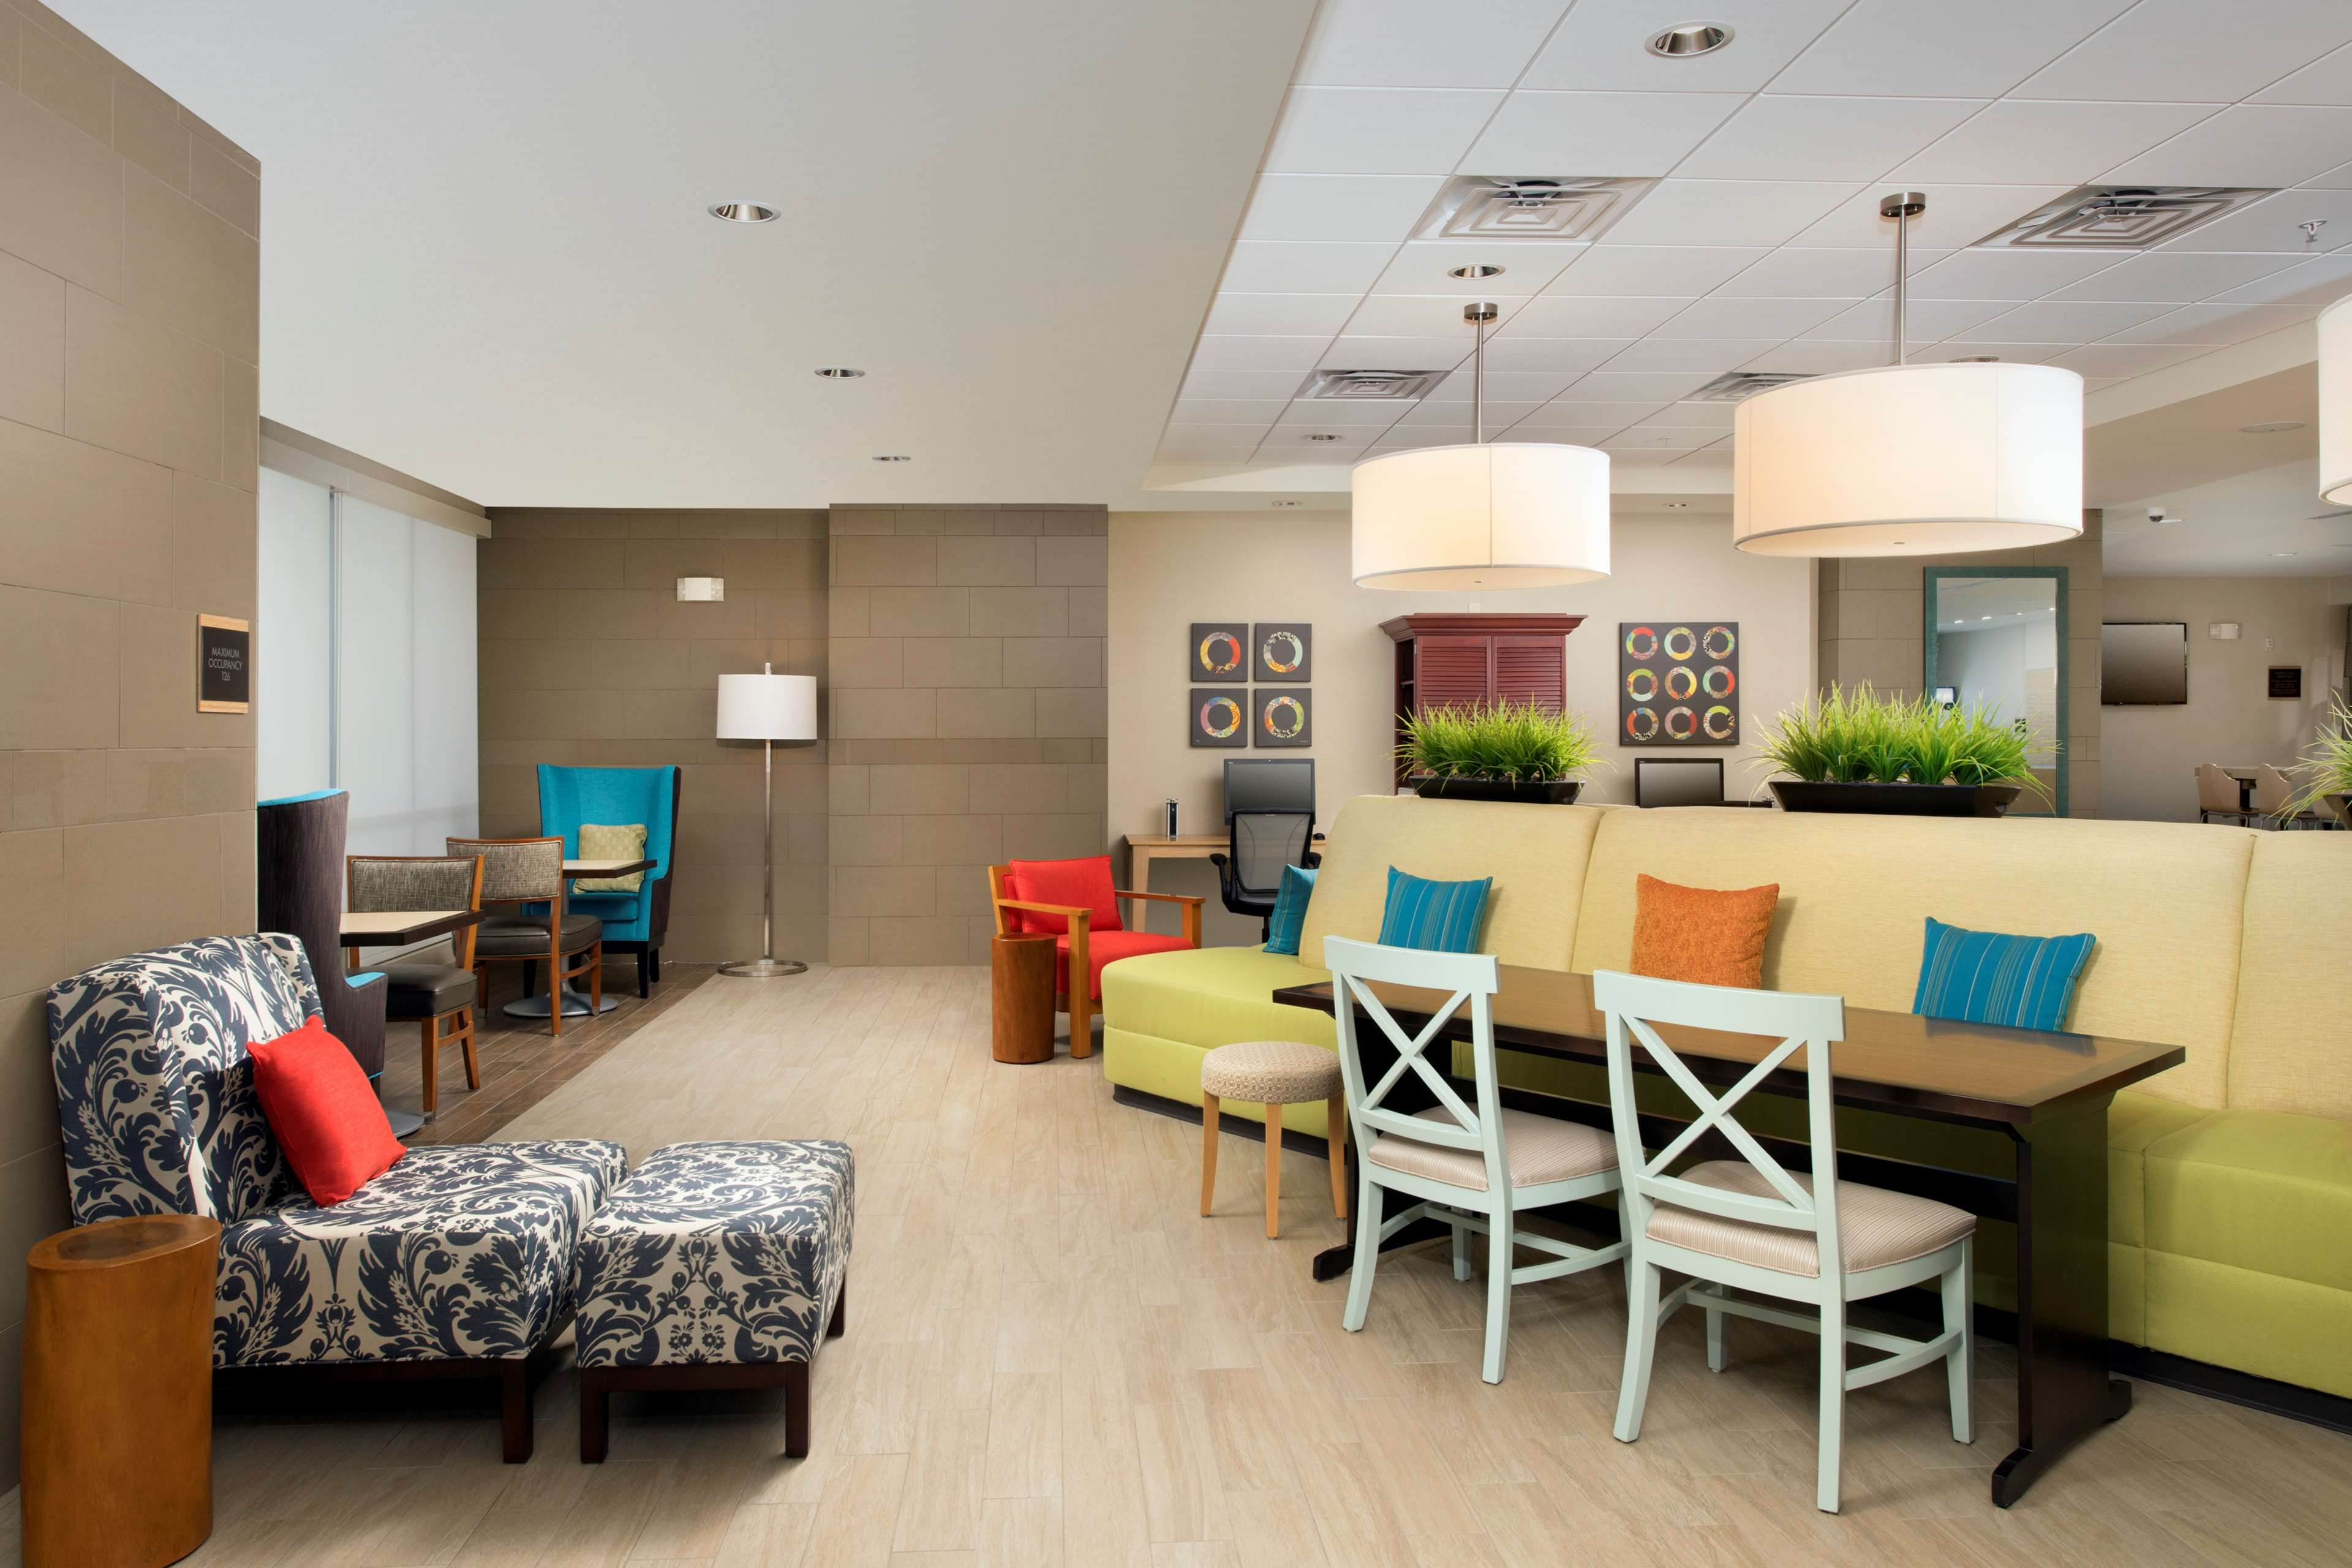 Home2 Suites by Hilton Denver International Airport image 1